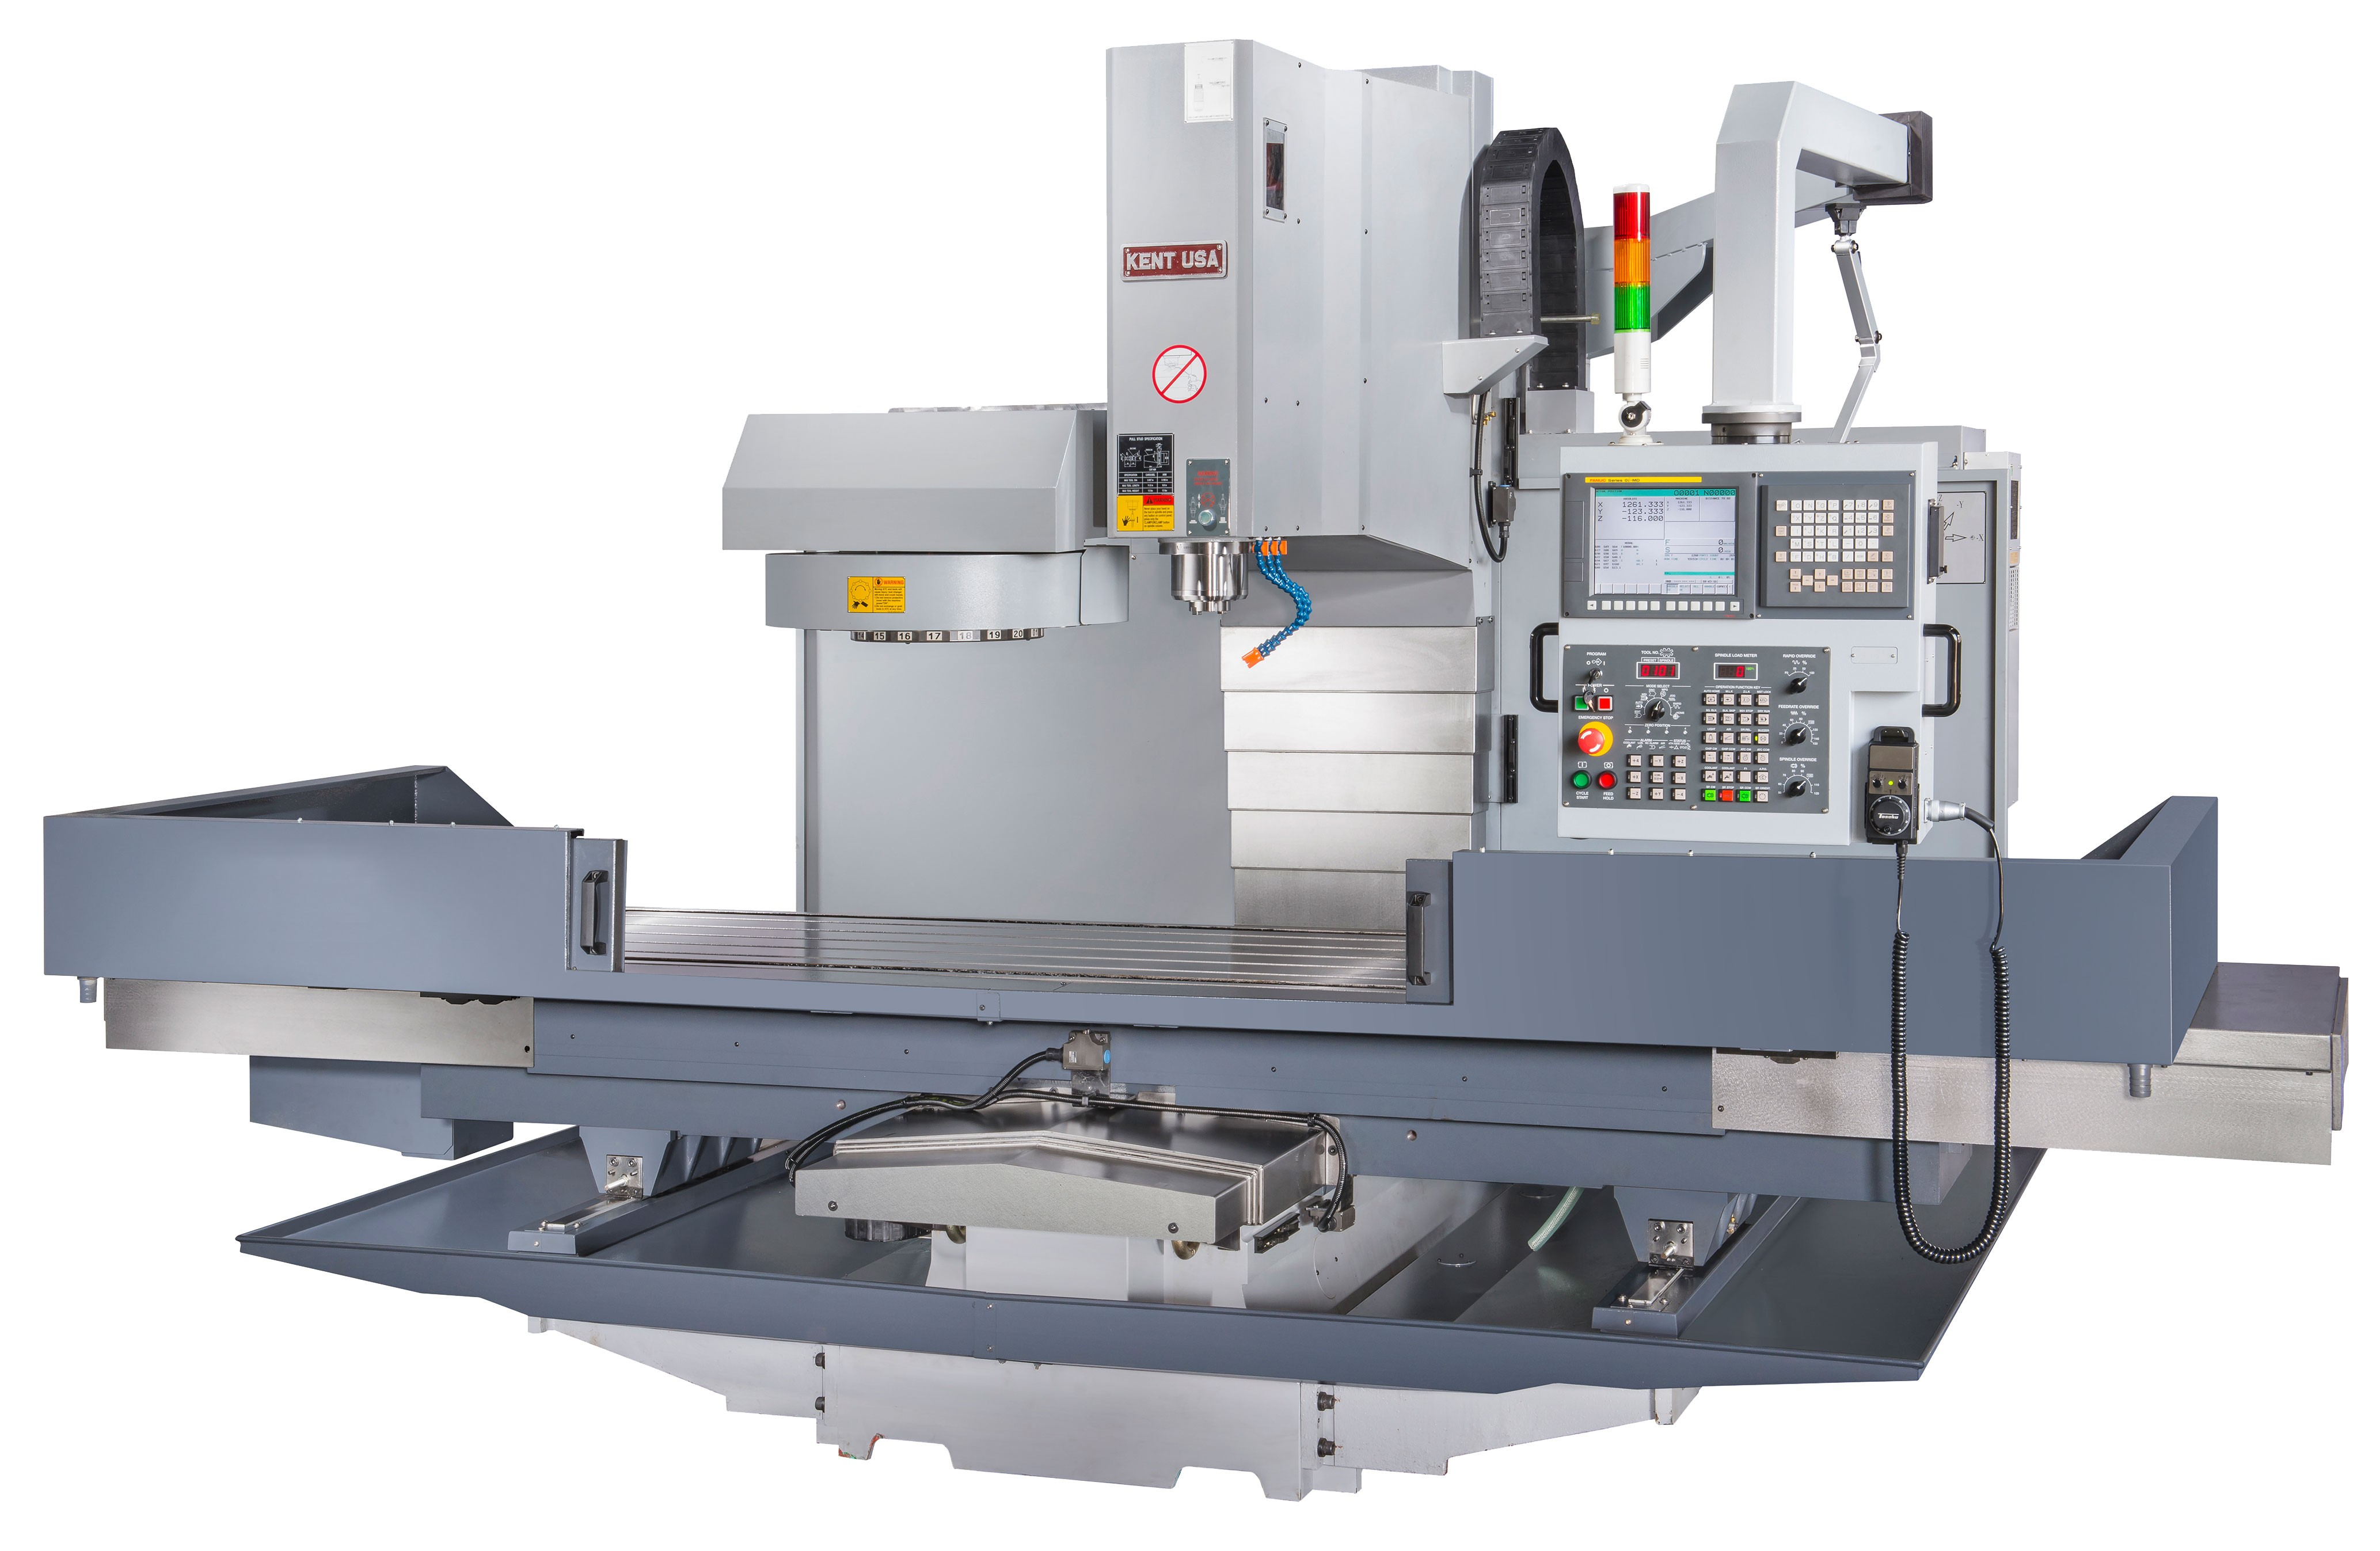 Kent S-2000 Bed Mill